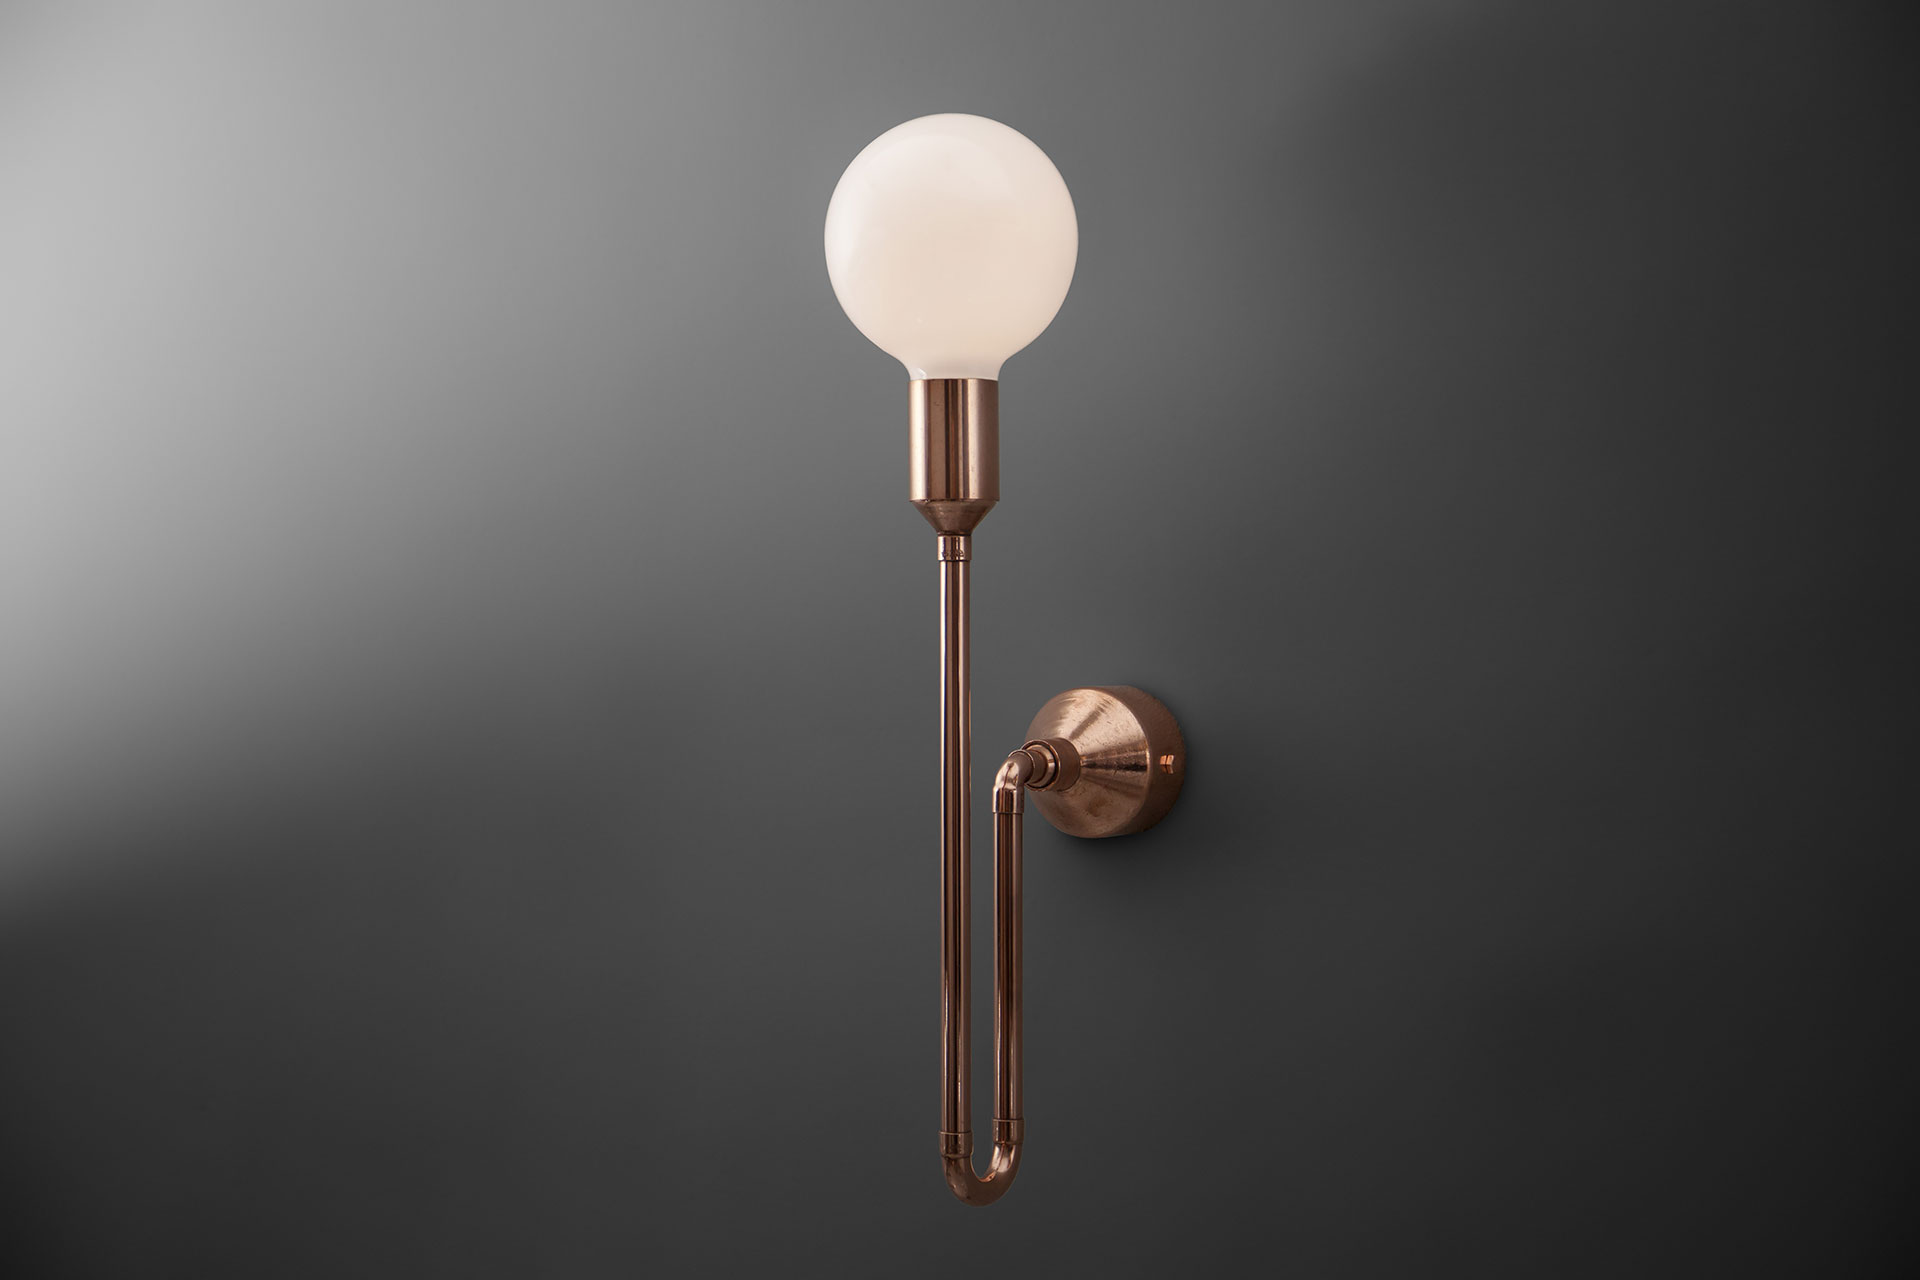 Copper pipe wall lamp inspired by industrial design